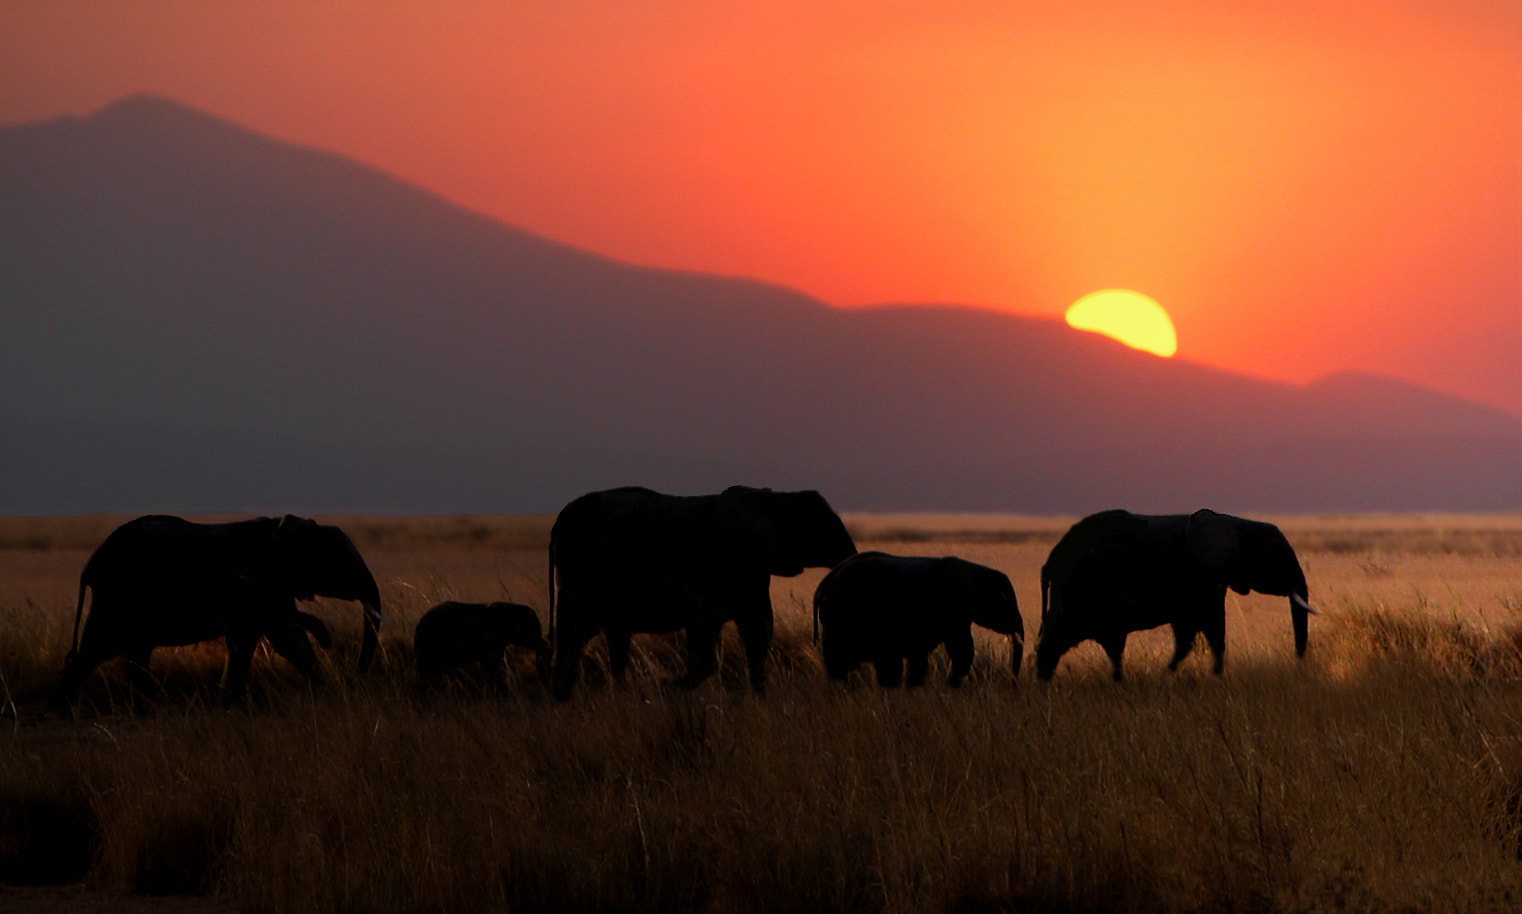 Photograph Elephants and sunset by Víctor J. Correa Nazco on 500px